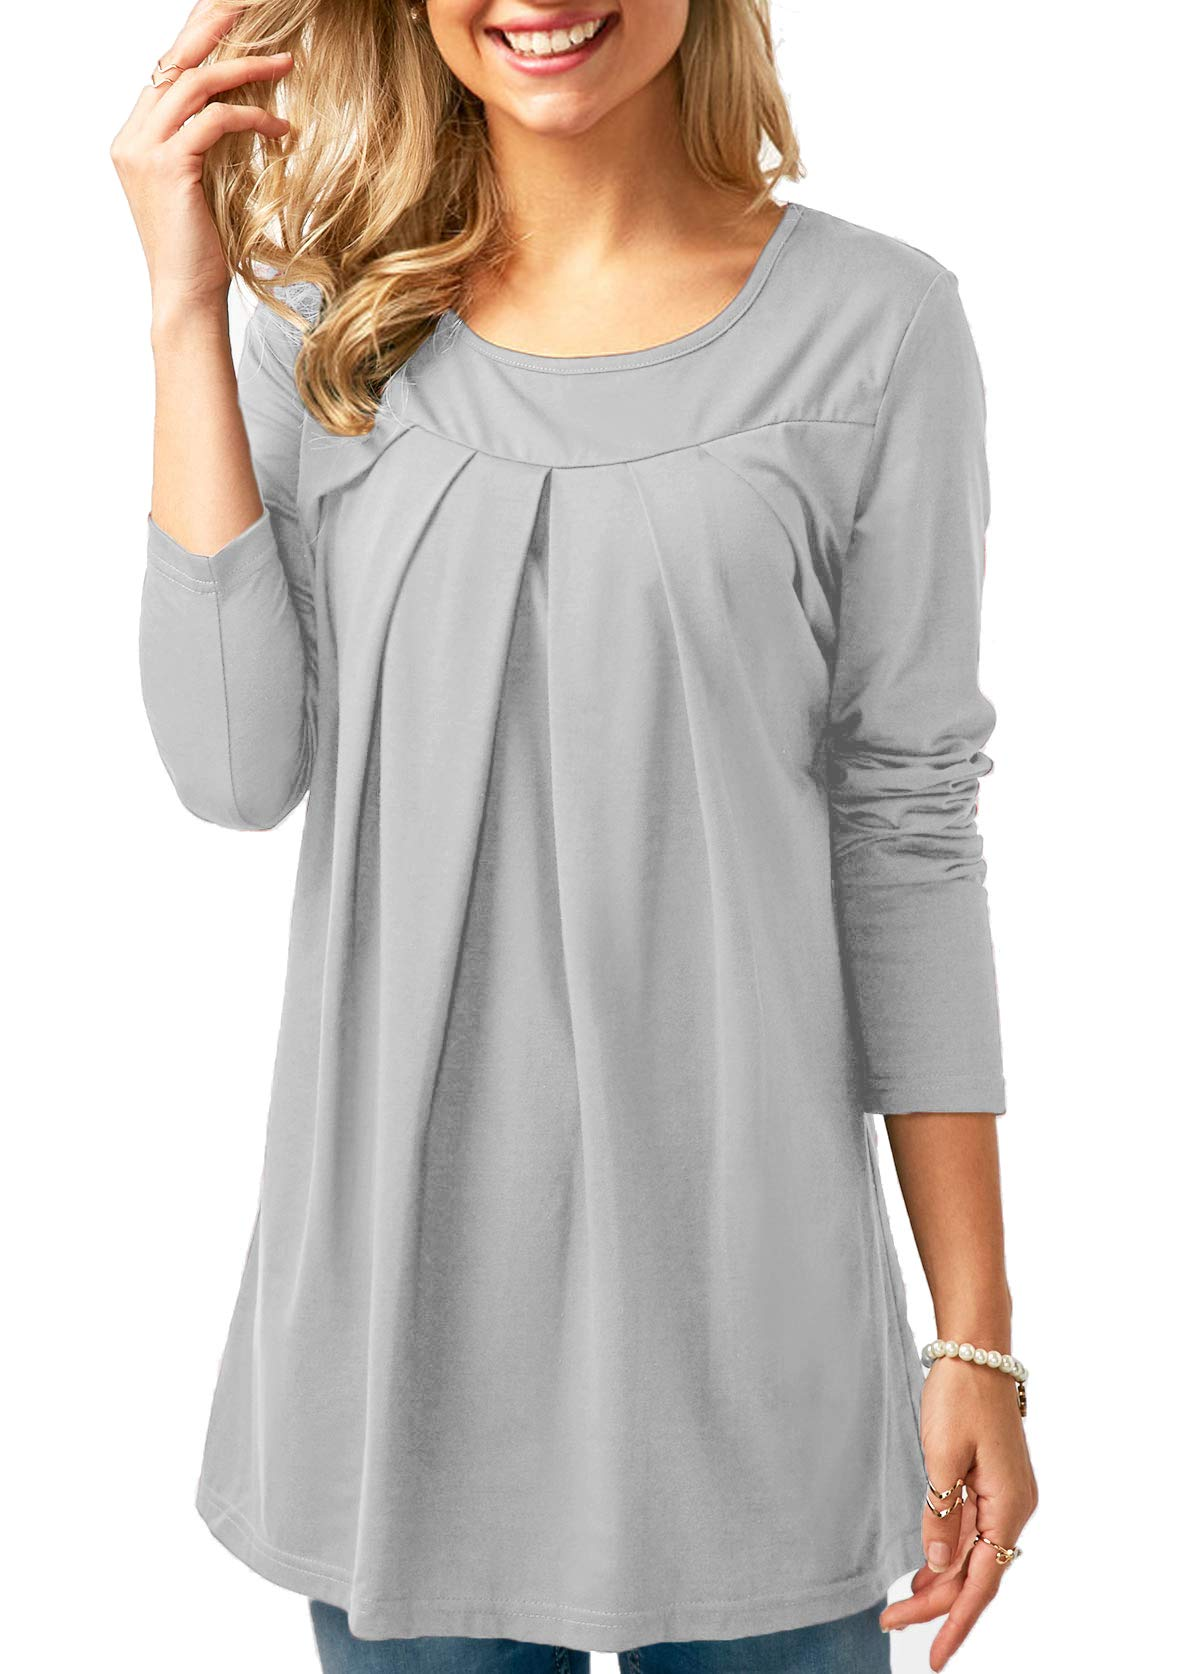 KISSMODA White Shirts Blouse for Woman Casual Tunic Tops Fit Flare Pleated High Low Light Gray M